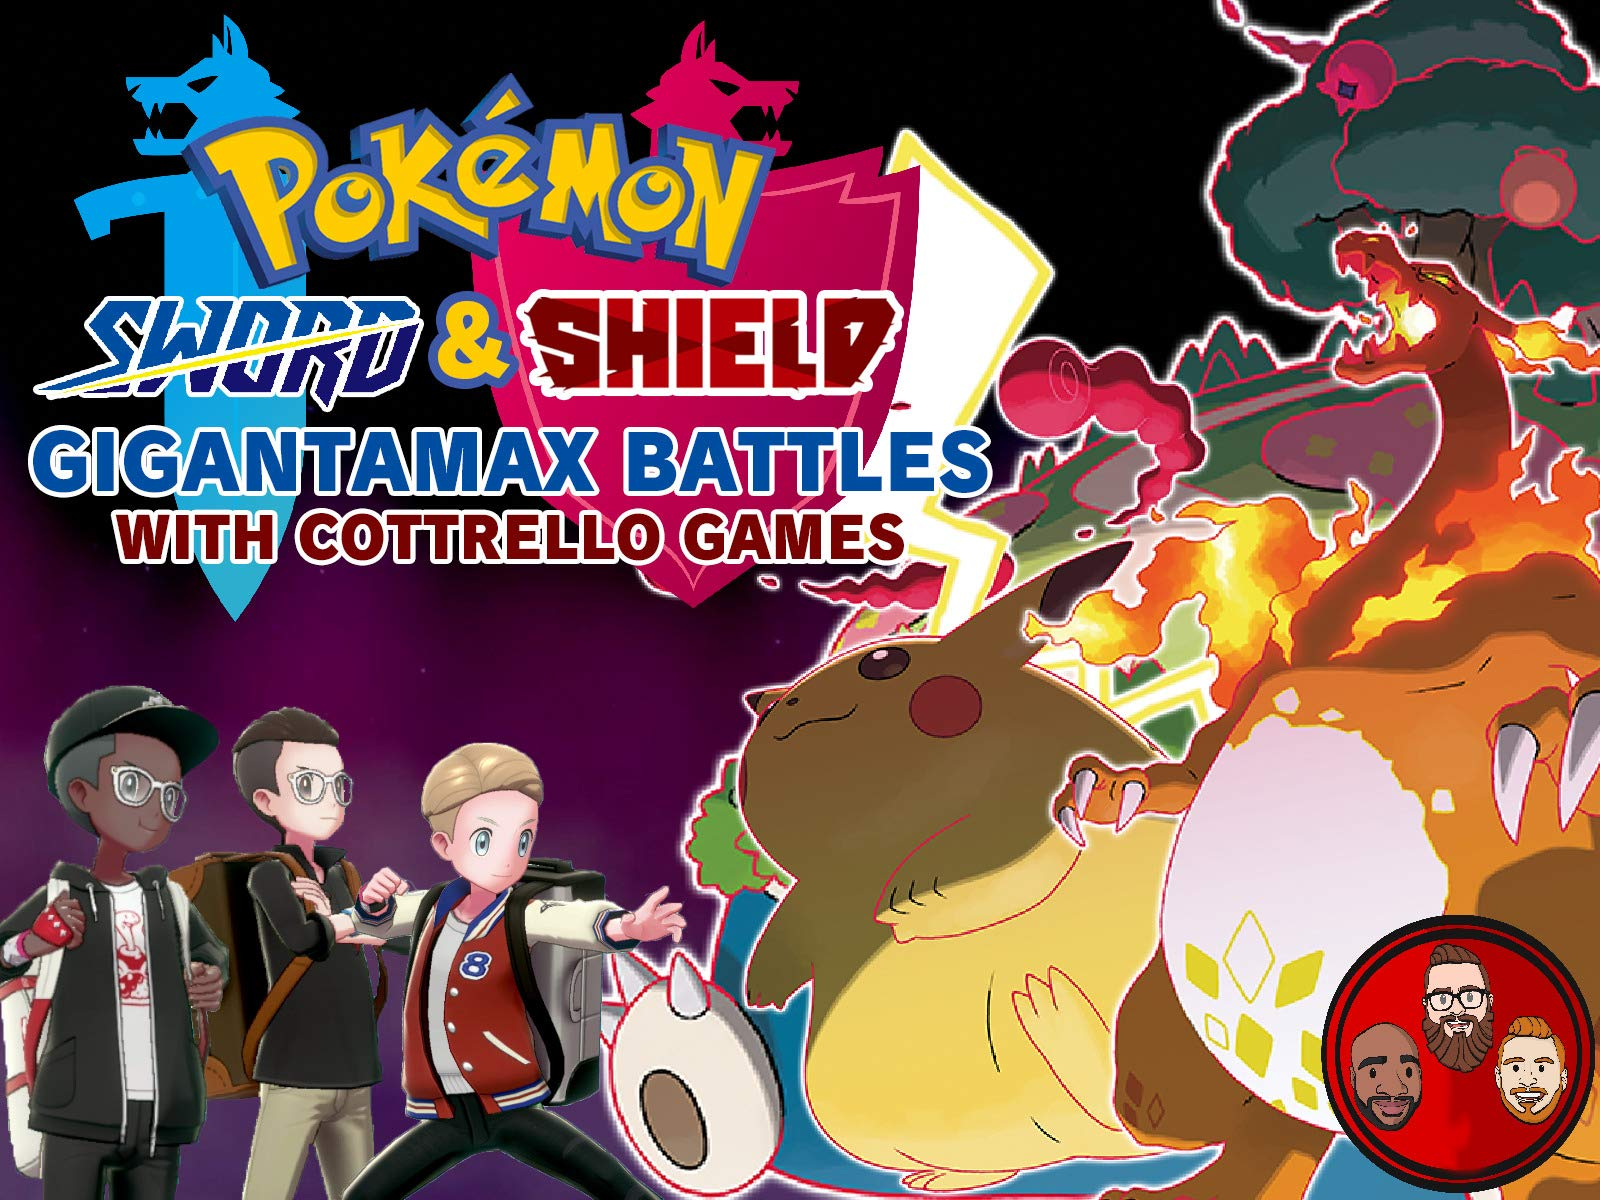 Pokemon Sword & Shield Gigantamax Battles with Cottrello Games